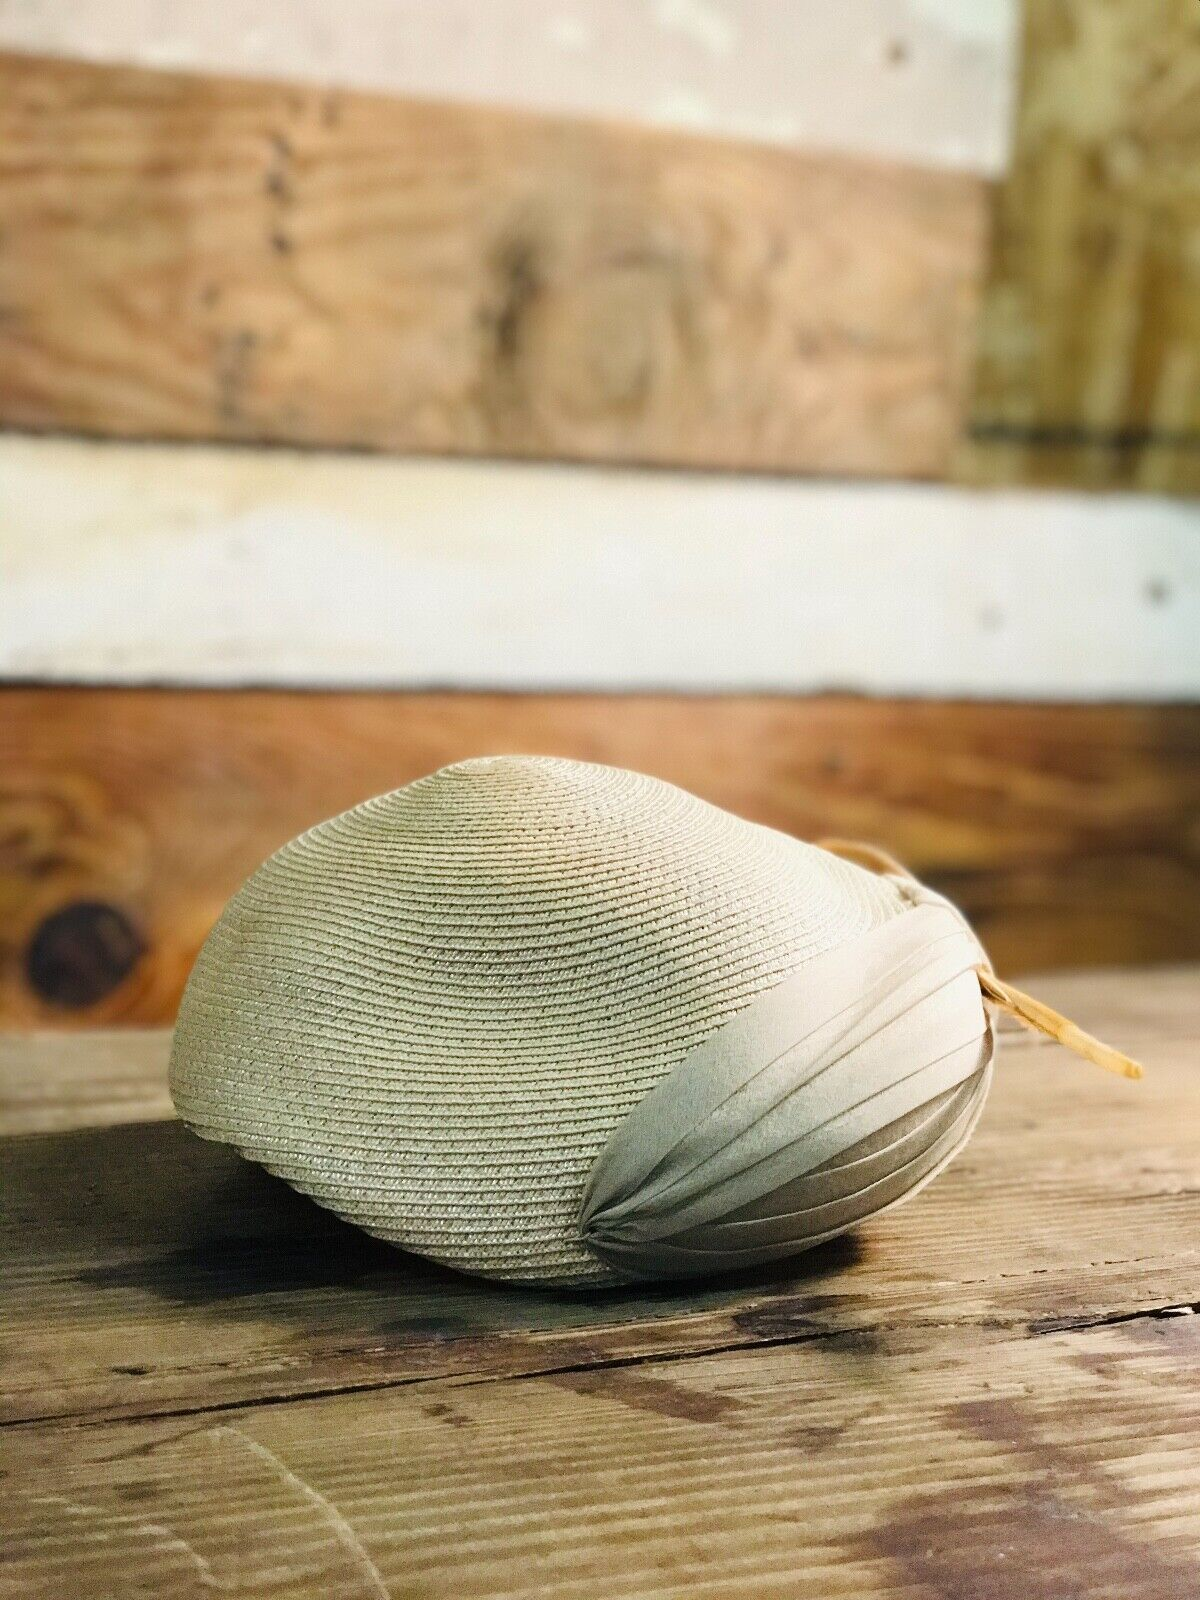 Vintage Womens Woven Wheat Straw Cap - image 2